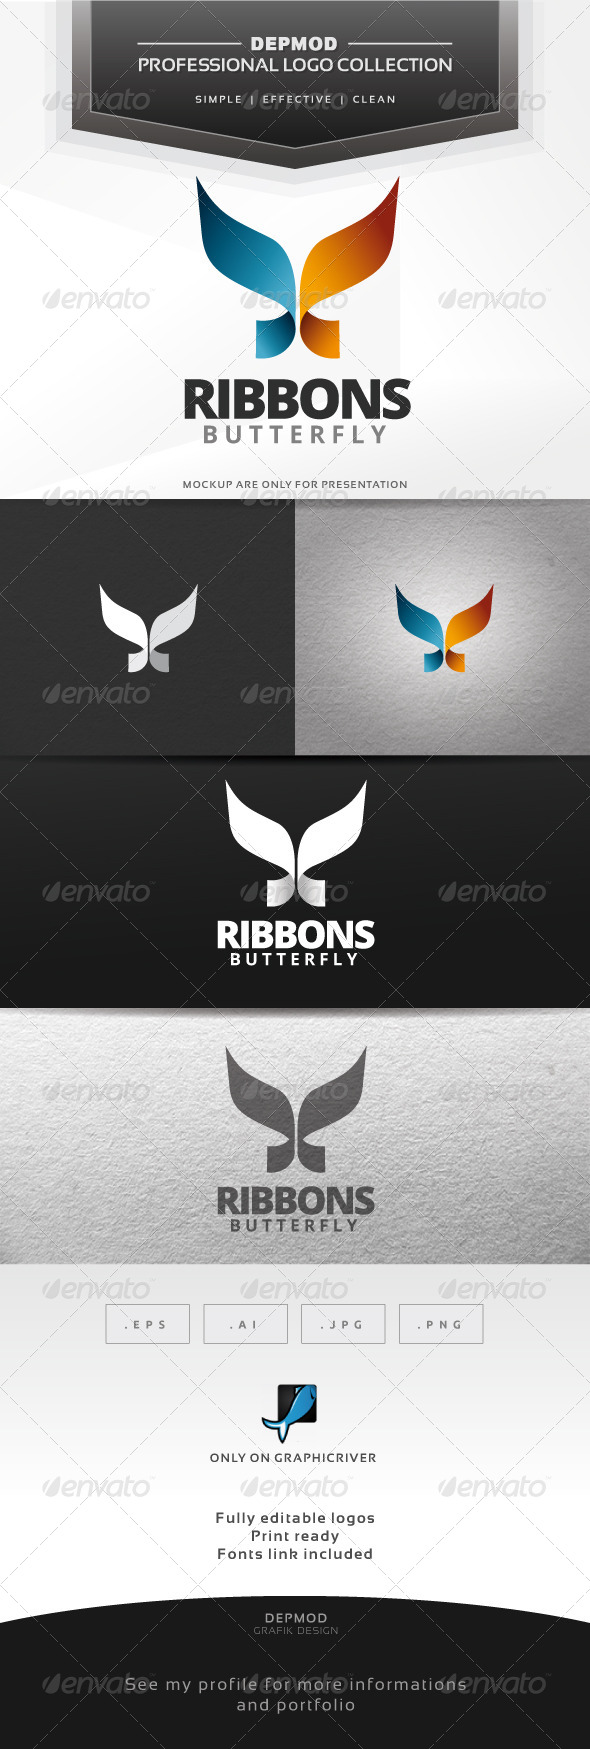 GraphicRiver Ribbons Butterfly Logo 6584388